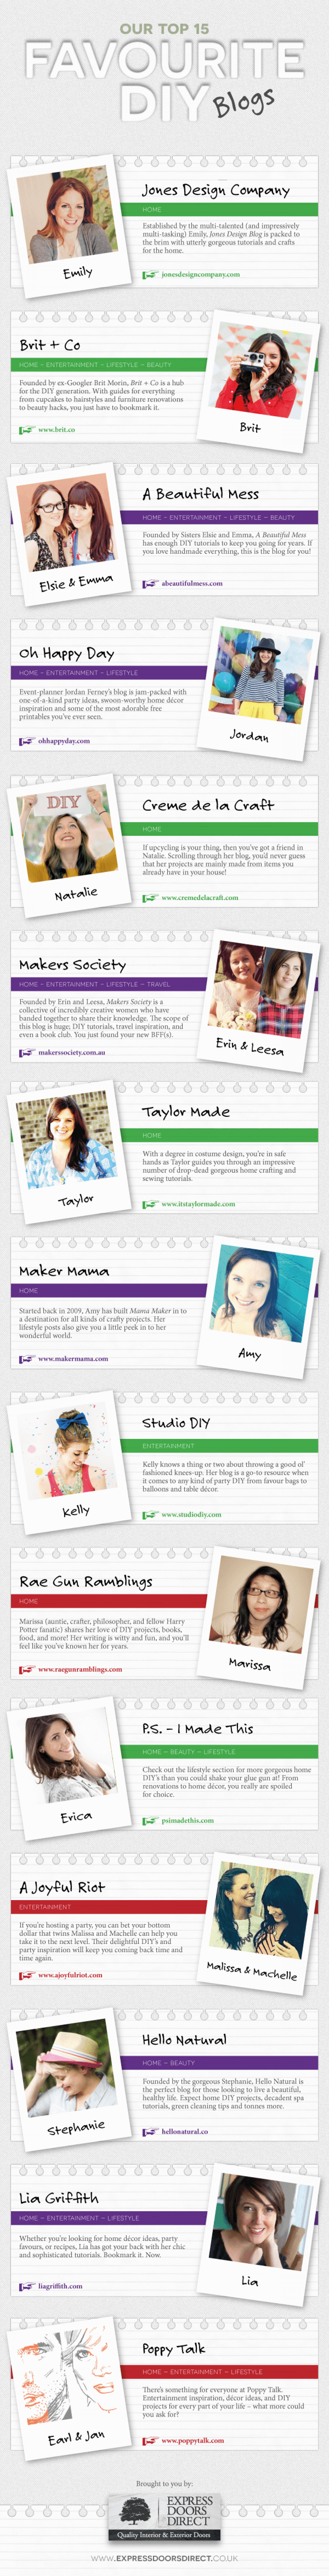 Our Top 15 Favourite DIY Blogs Infographic